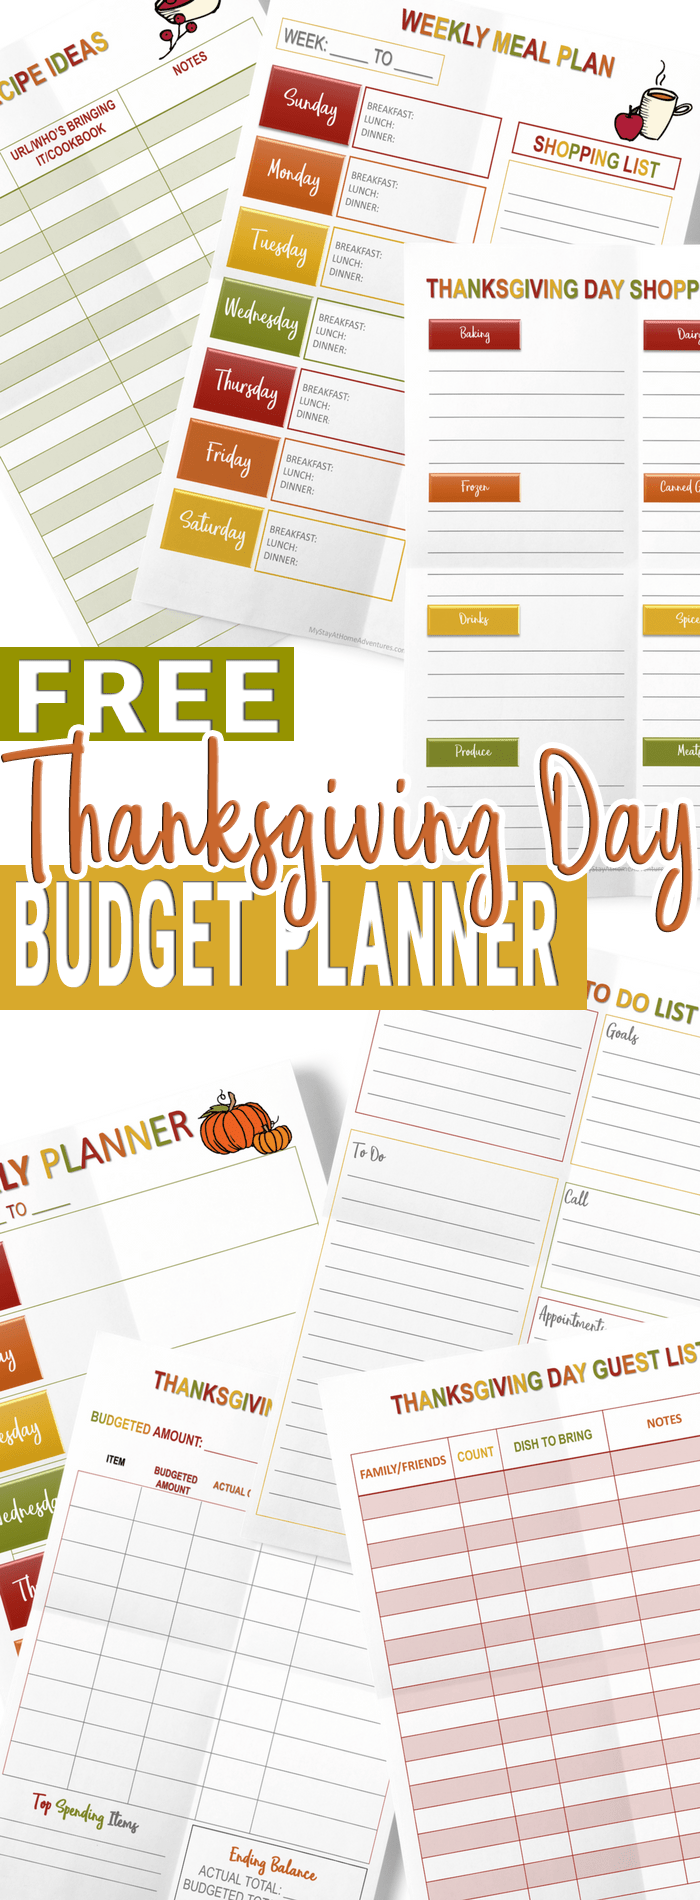 Grab This 2017 Thanksgiving Day Budget Planner Today!